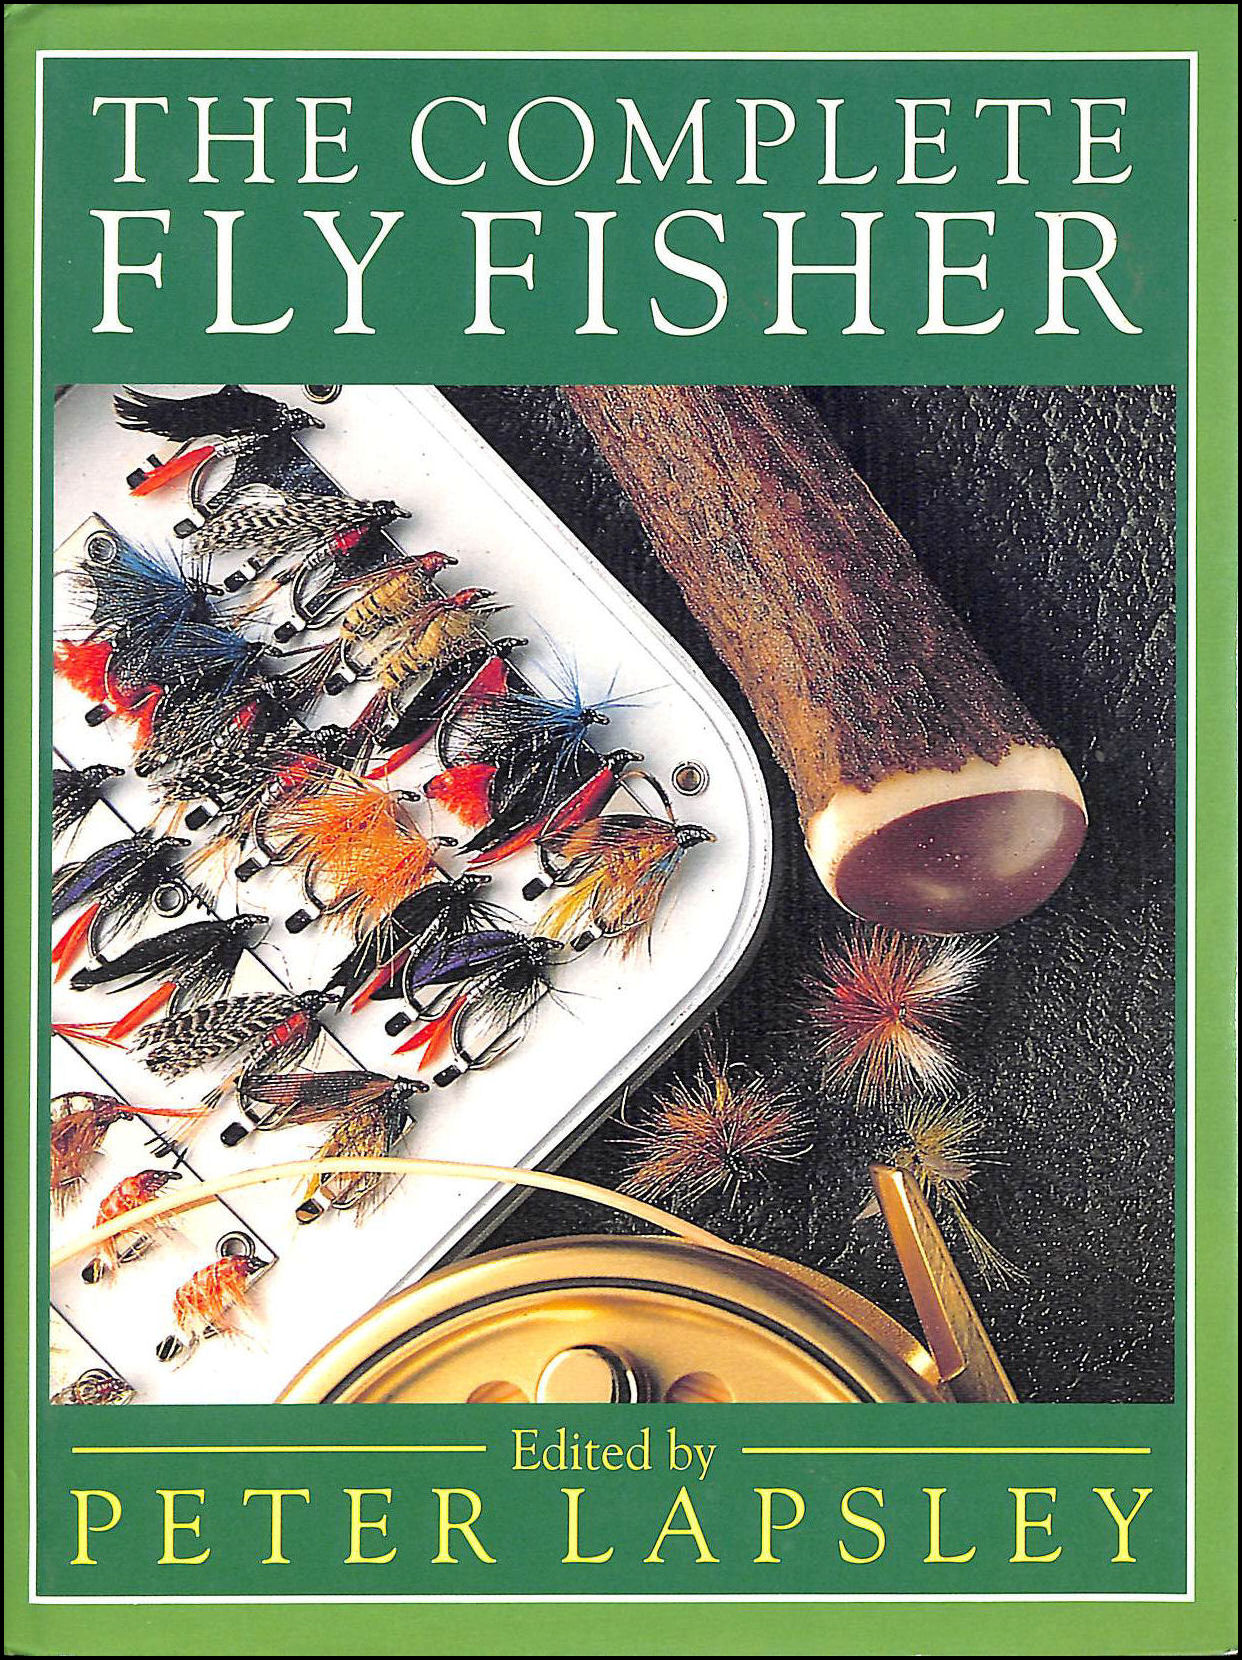 The Complete Fly Fisher, Peter Lapsley [Editor]